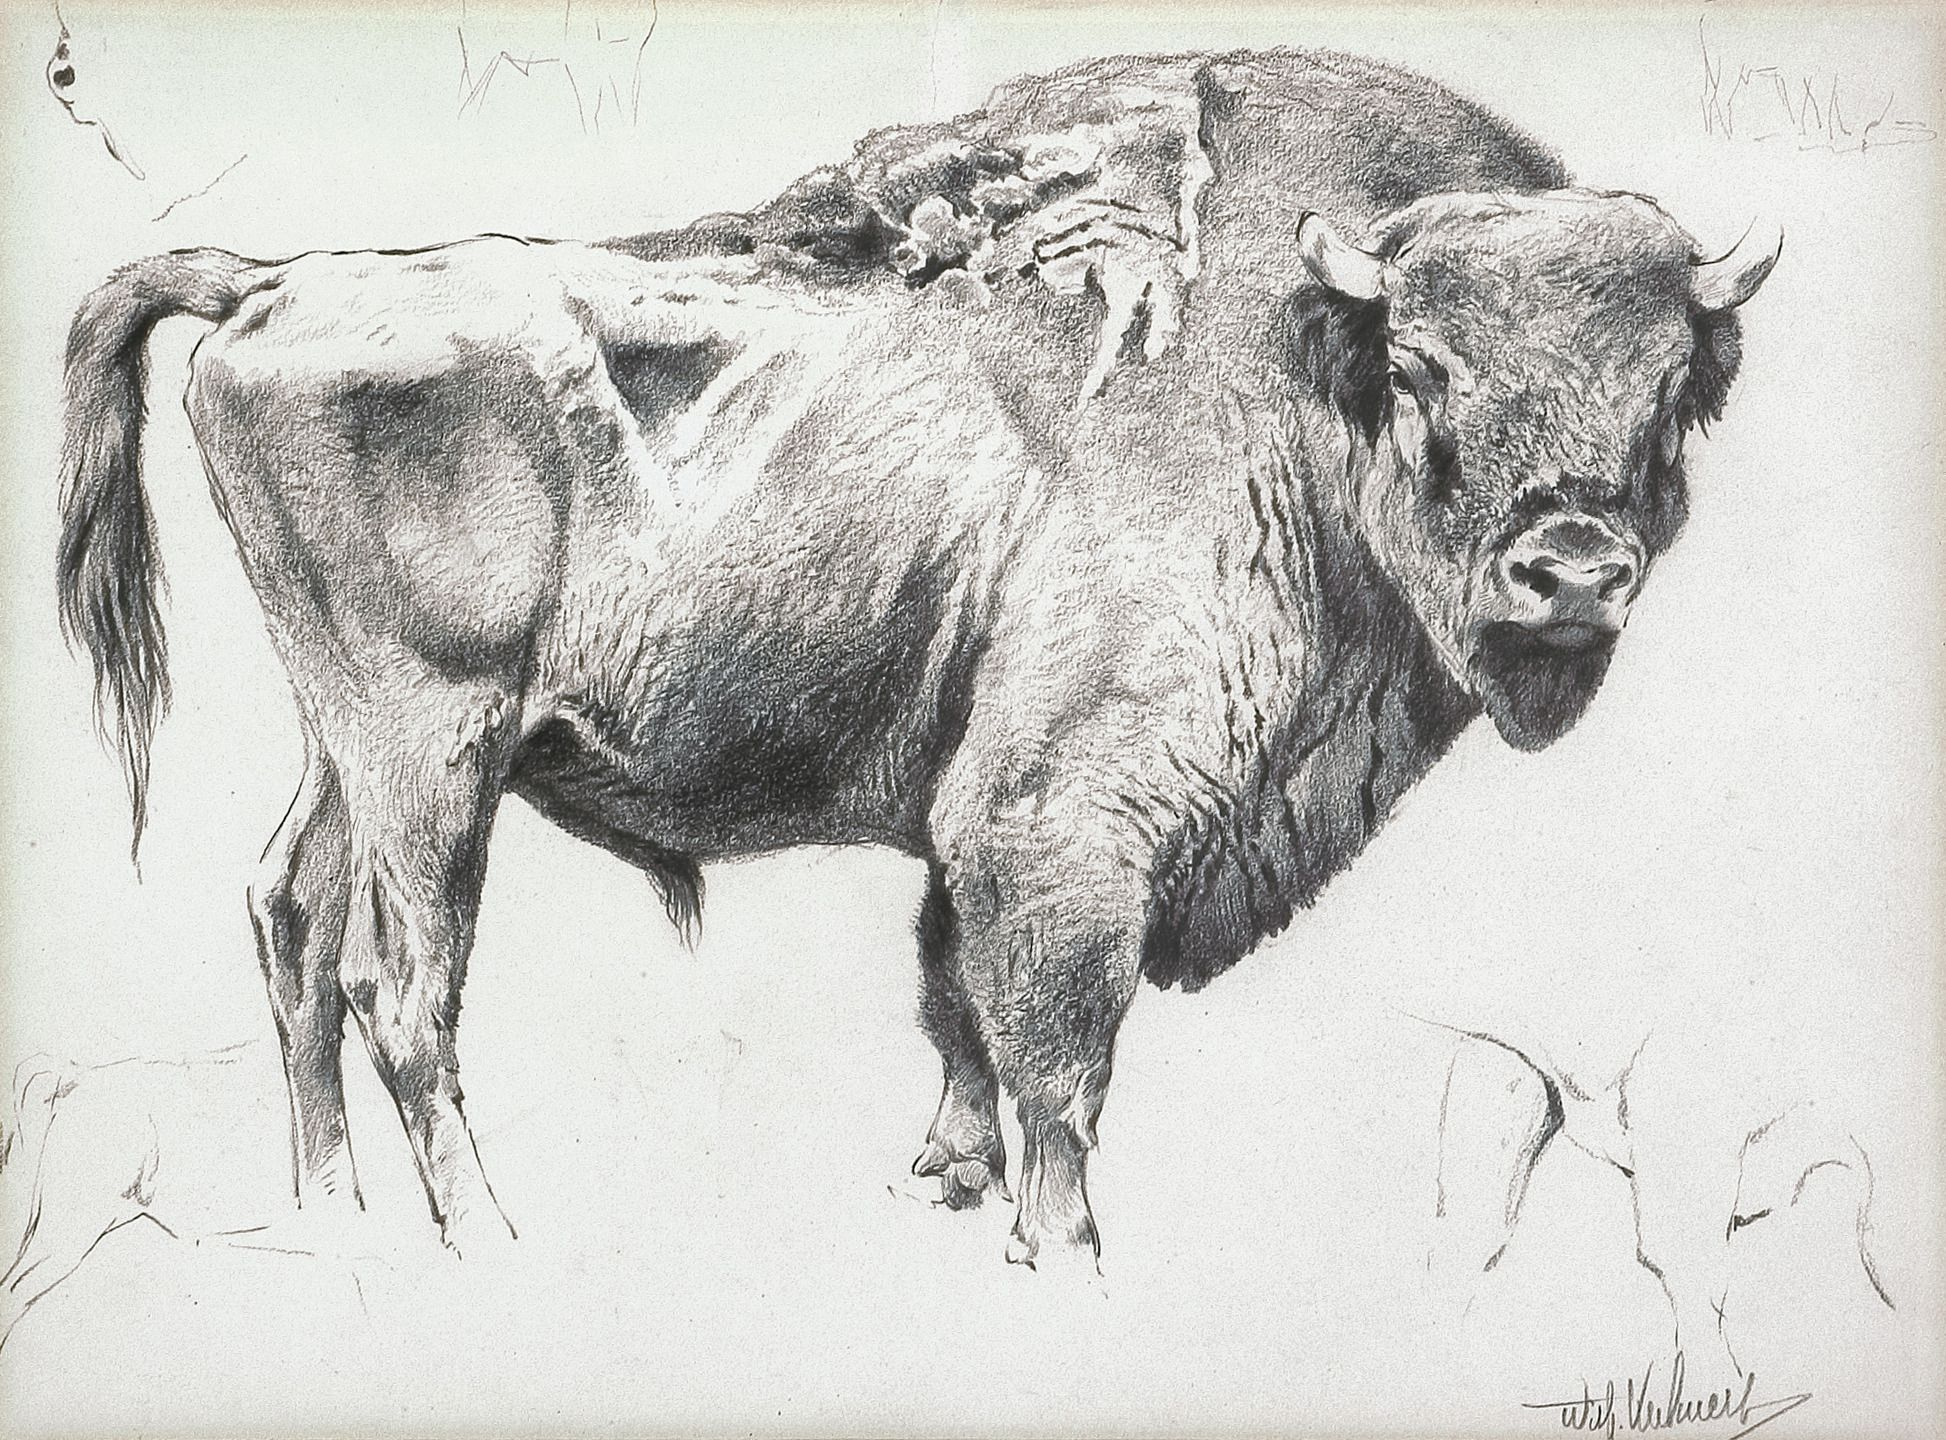 Wilhelm Kuhnert Bison The Coeur d'Alene Art Auction